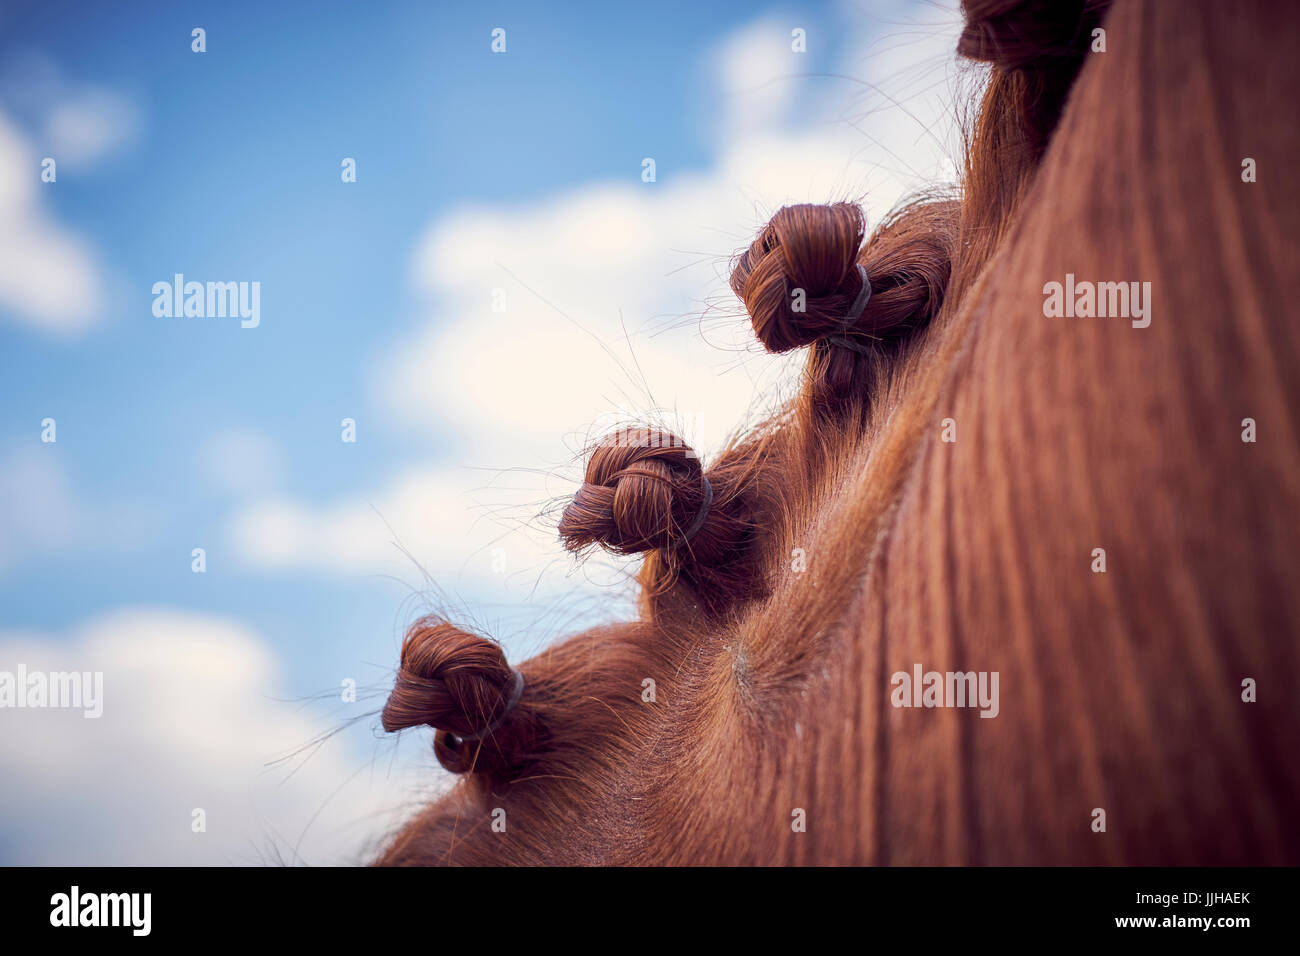 Detail of the plaiting on a horse's mane. Stock Photo